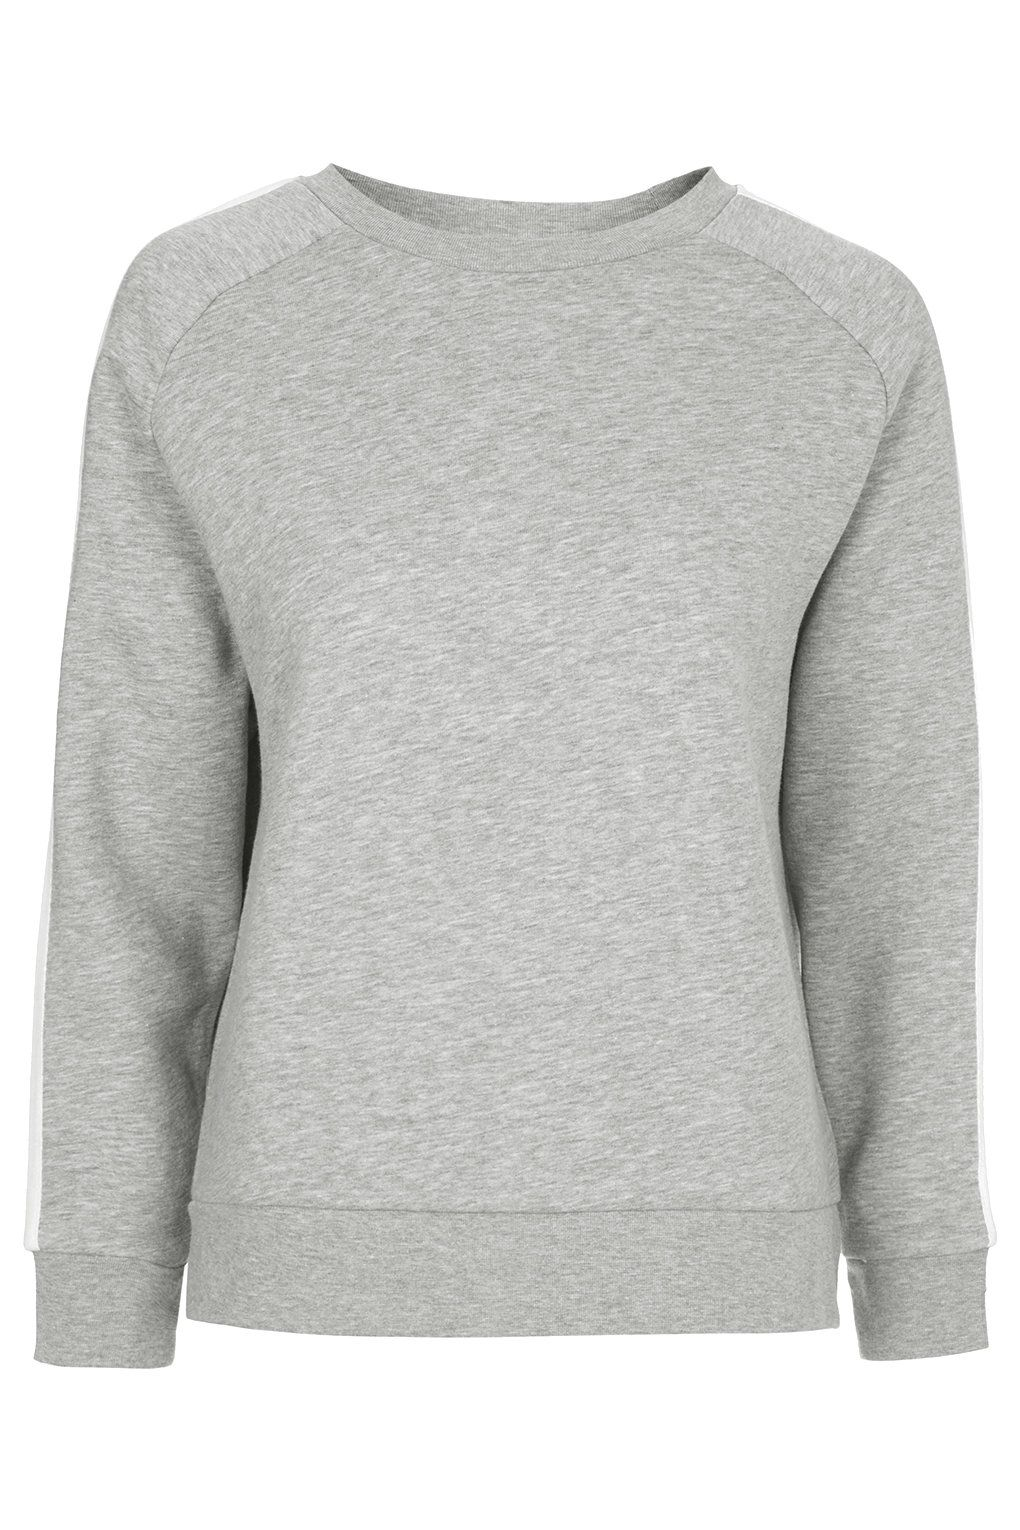 Sporty Sweat by Boutique - Topshop Europe